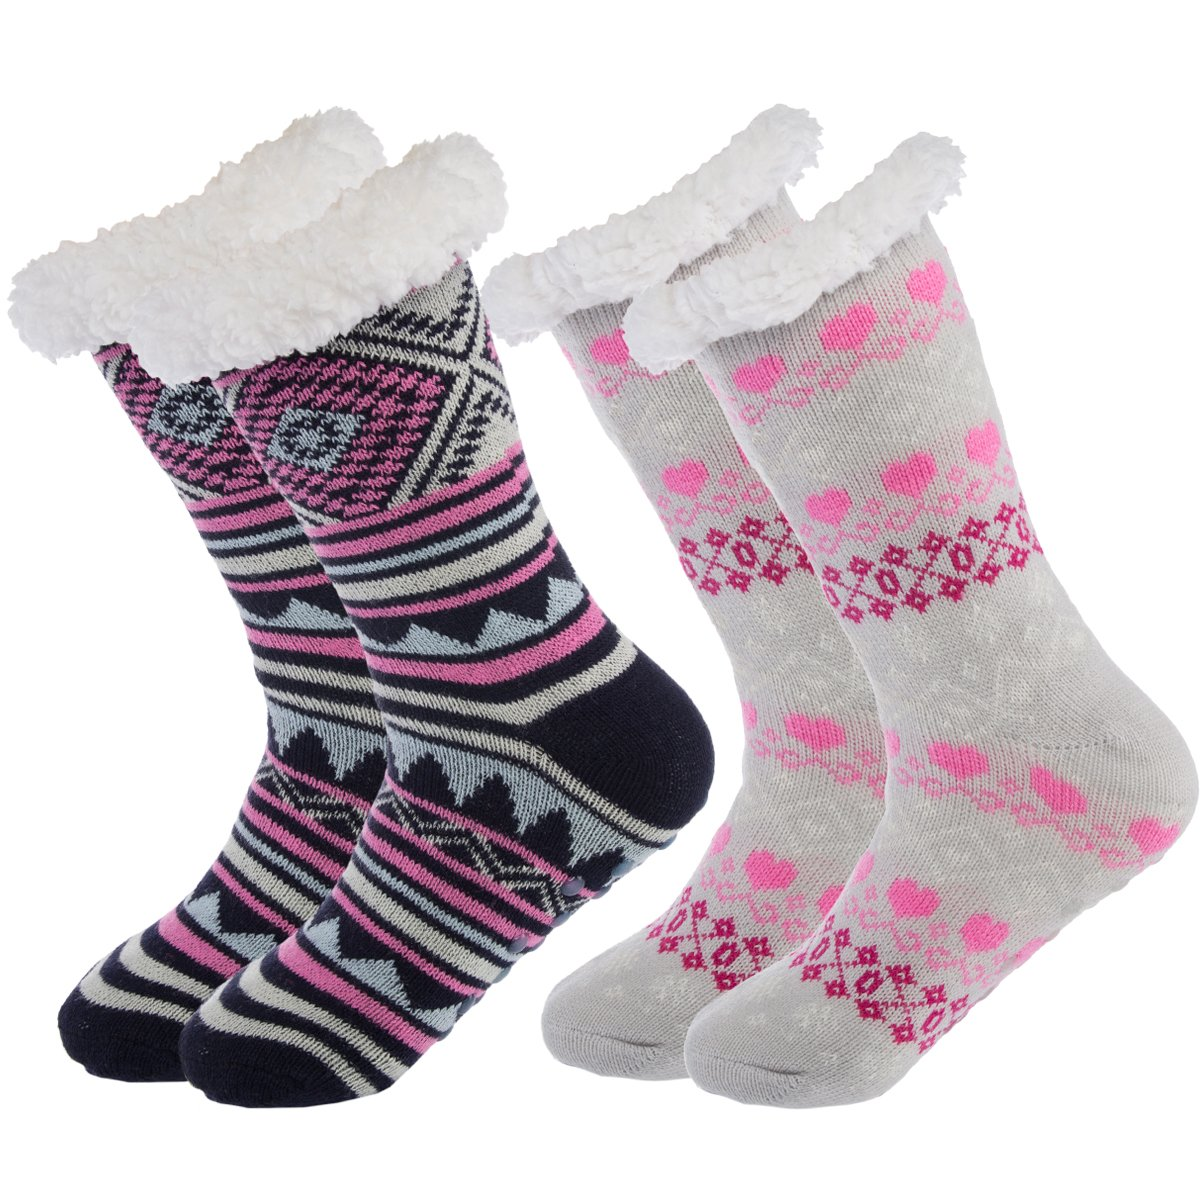 Treehouse Knit (2 Pack) Womens Thick Knit Sherpa Lined Cozy Thermal Fuzzy Slipper Socks With Grippers Navy/Gery